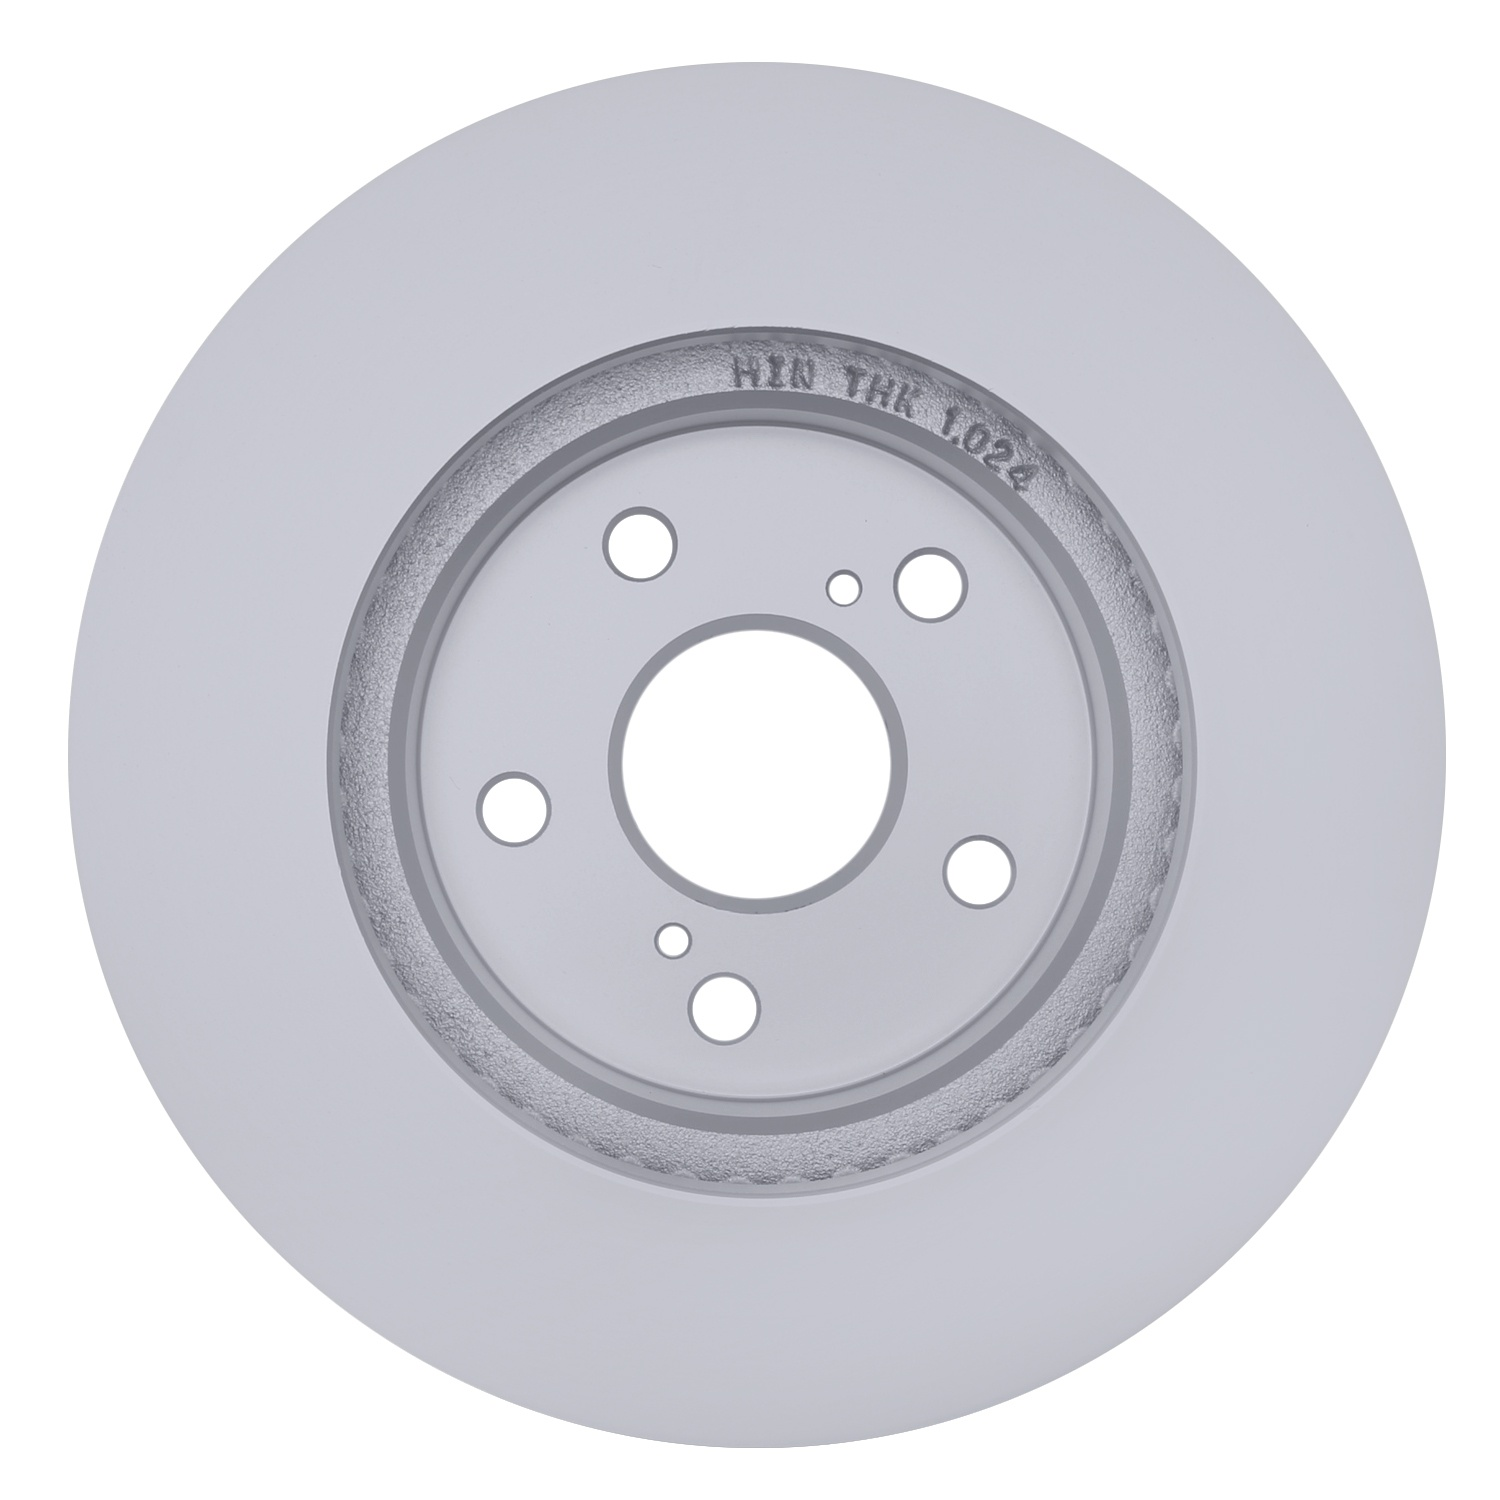 ACDELCO SILVER/ADVANTAGE - Coated Disc Brake Rotor (Front) - DCD 18A1485AC